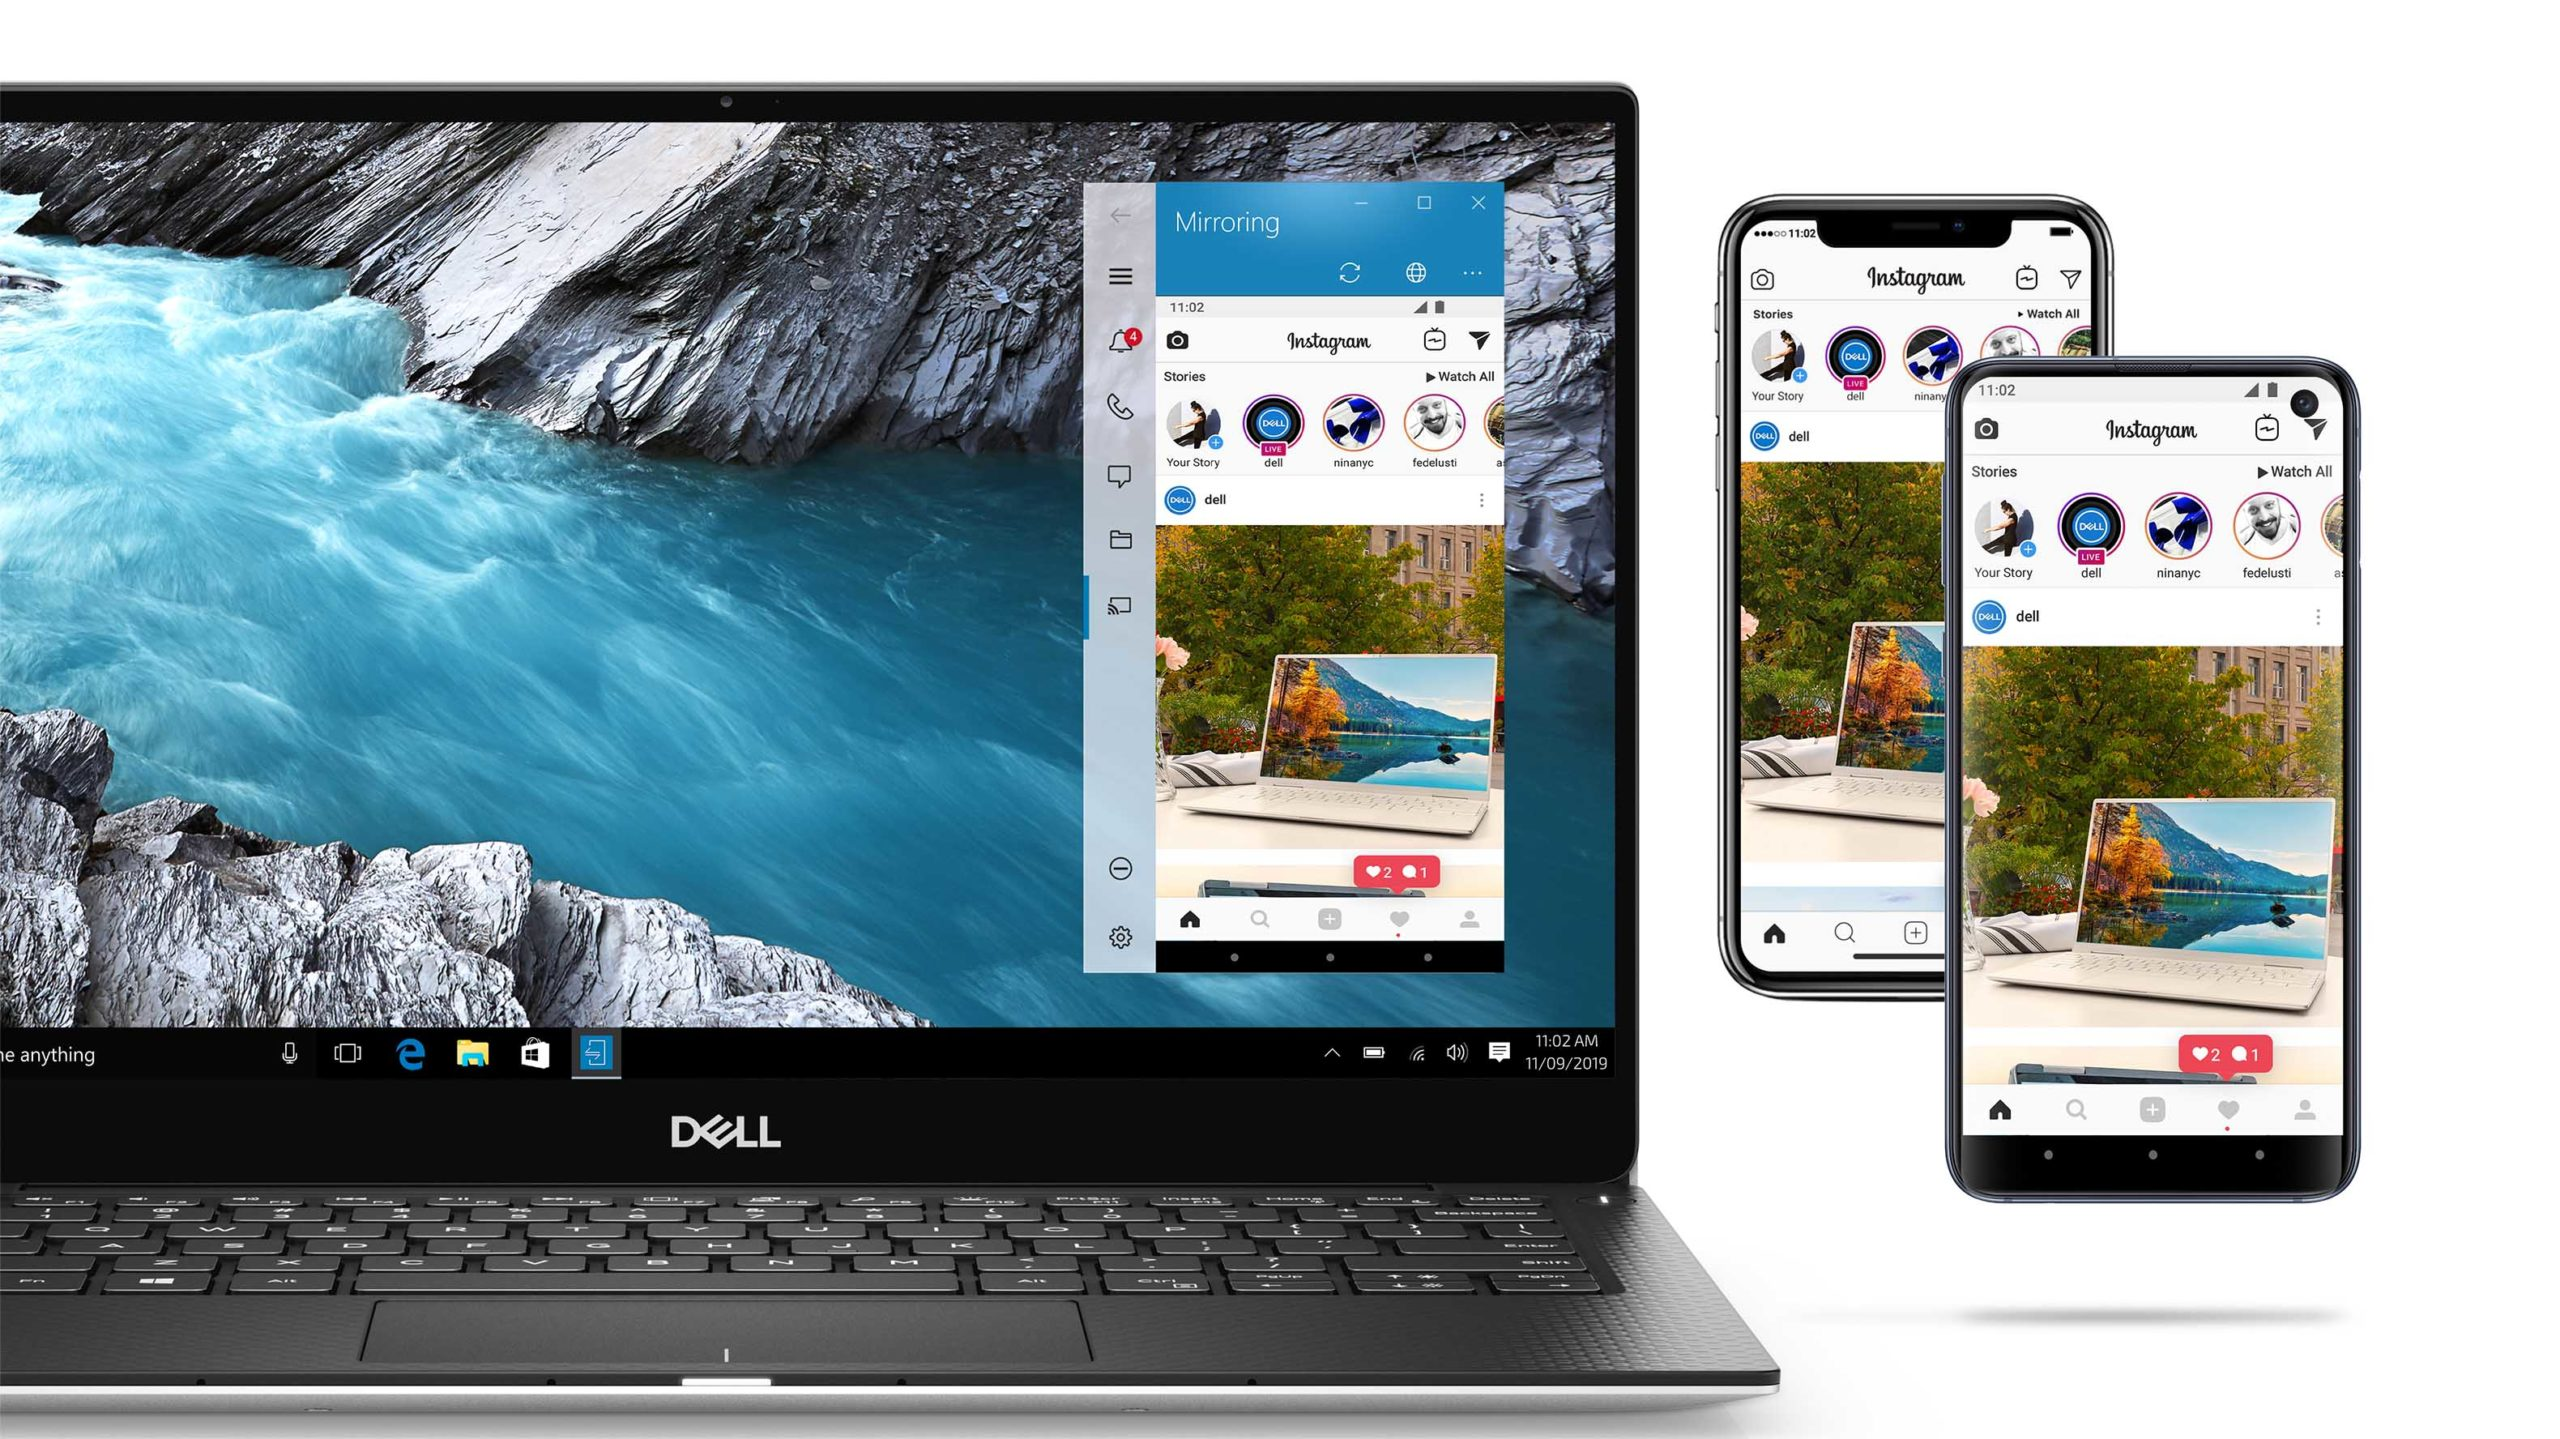 Dell Mobile Connect mirroring with Android and iPhone